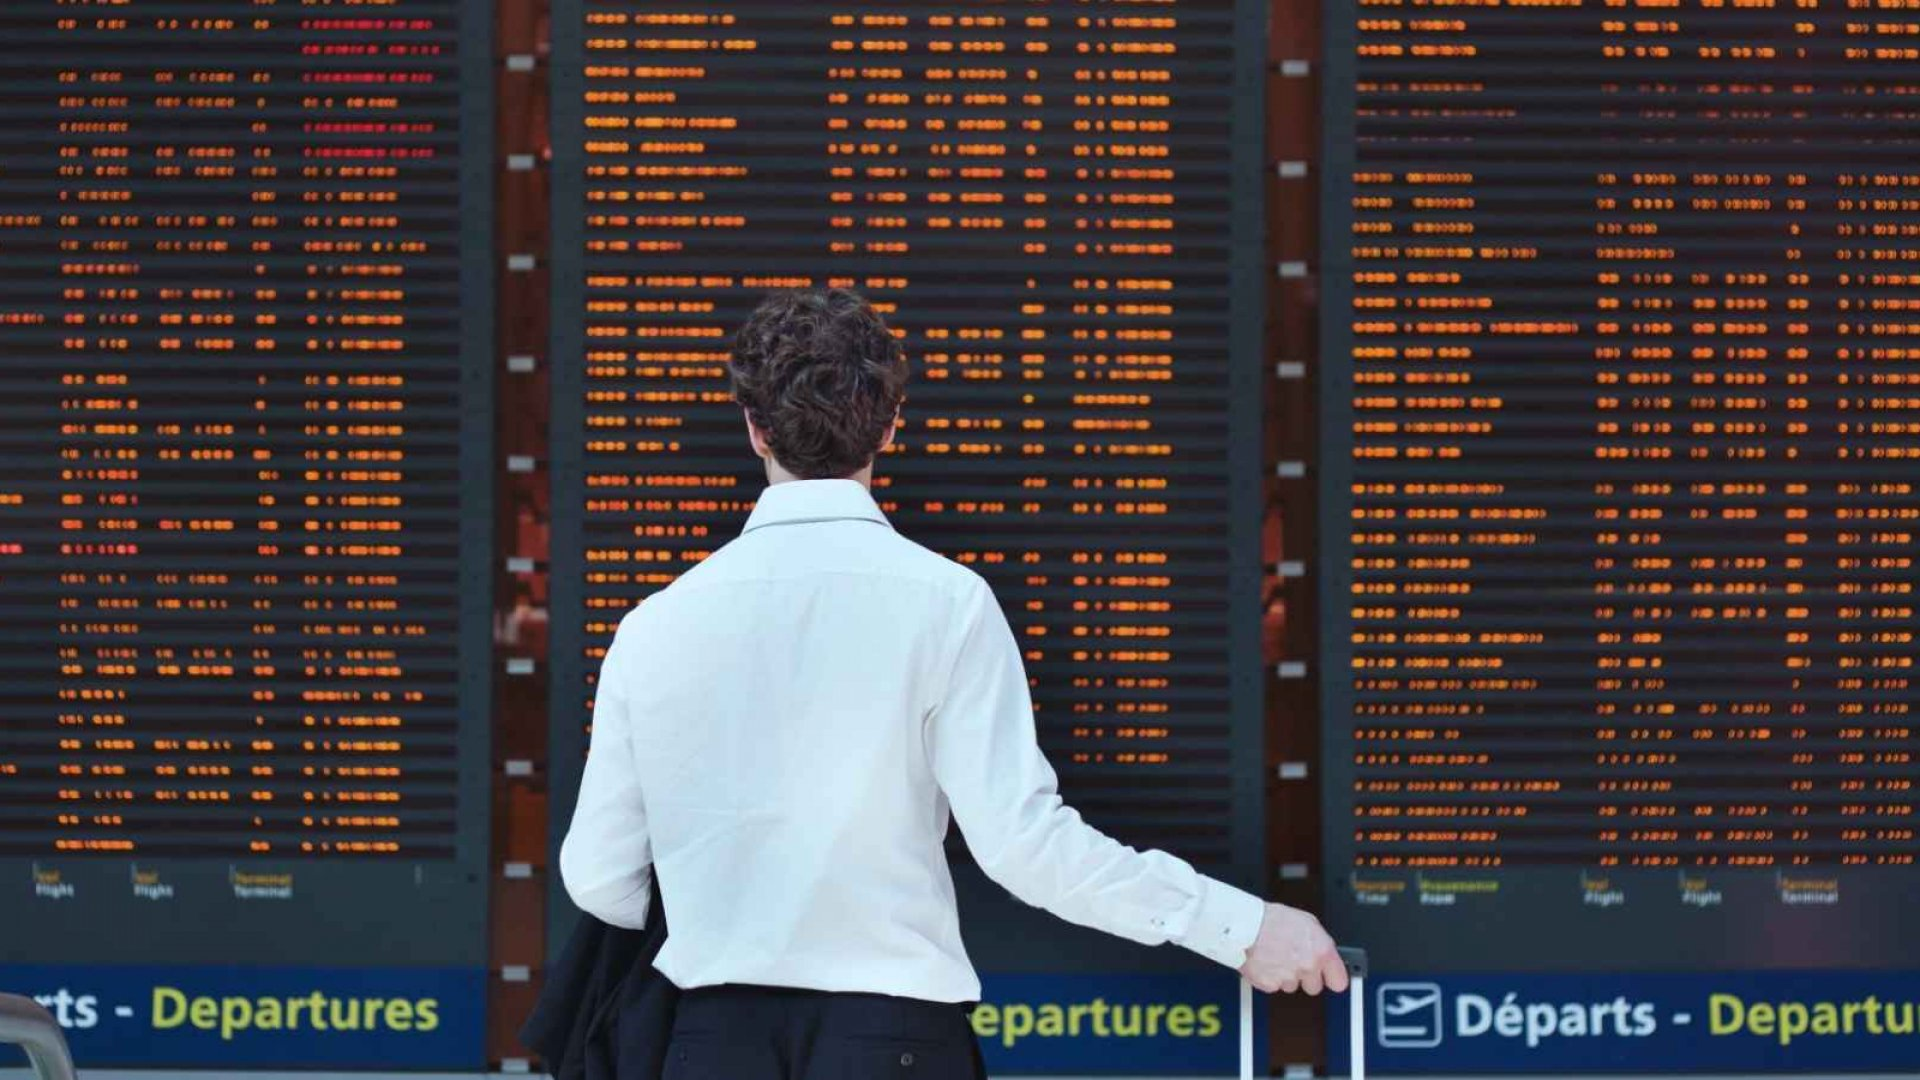 How to Save Money on Business Travel, Without Wasting Time